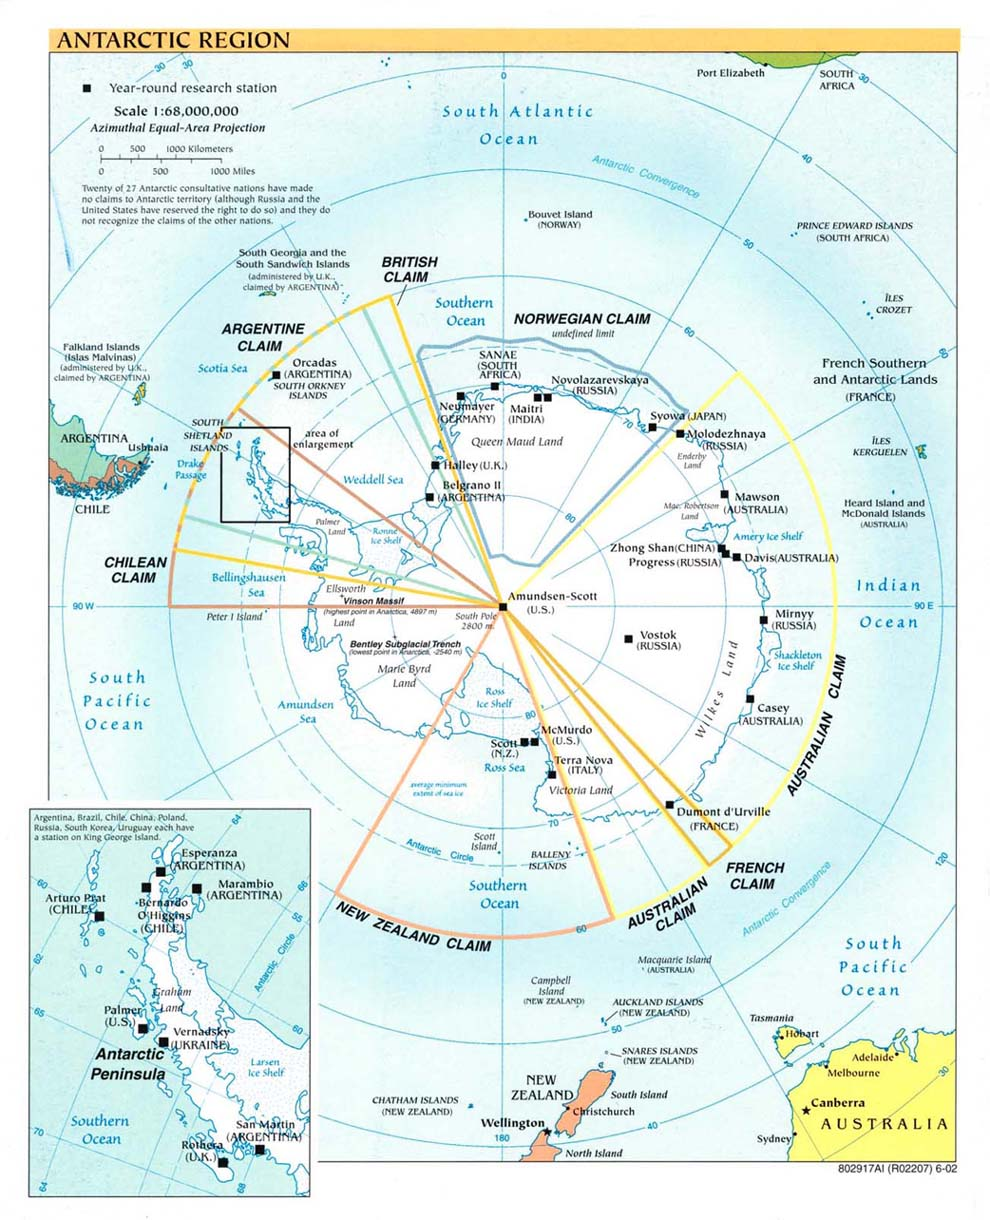 Antarctica Map / Map of Antarctica - Facts About Antarctica ... on map of western hemisphere, map of ross ice shelf, atlantic ocean, arctic ocean, pacific ocean, map of iceland, north pole, map of italy, map of oceania, map of australia, map of arctic, map of africa, map of pangea, map of south orkney islands, map of antarctic peninsula, map of europe, map of south shetland islands, map of mongolia, south america, map of world, southern ocean, map of the continents, map of earth, map of argentina, map of north pole, north america, map of weddell sea, indian ocean, south pole,